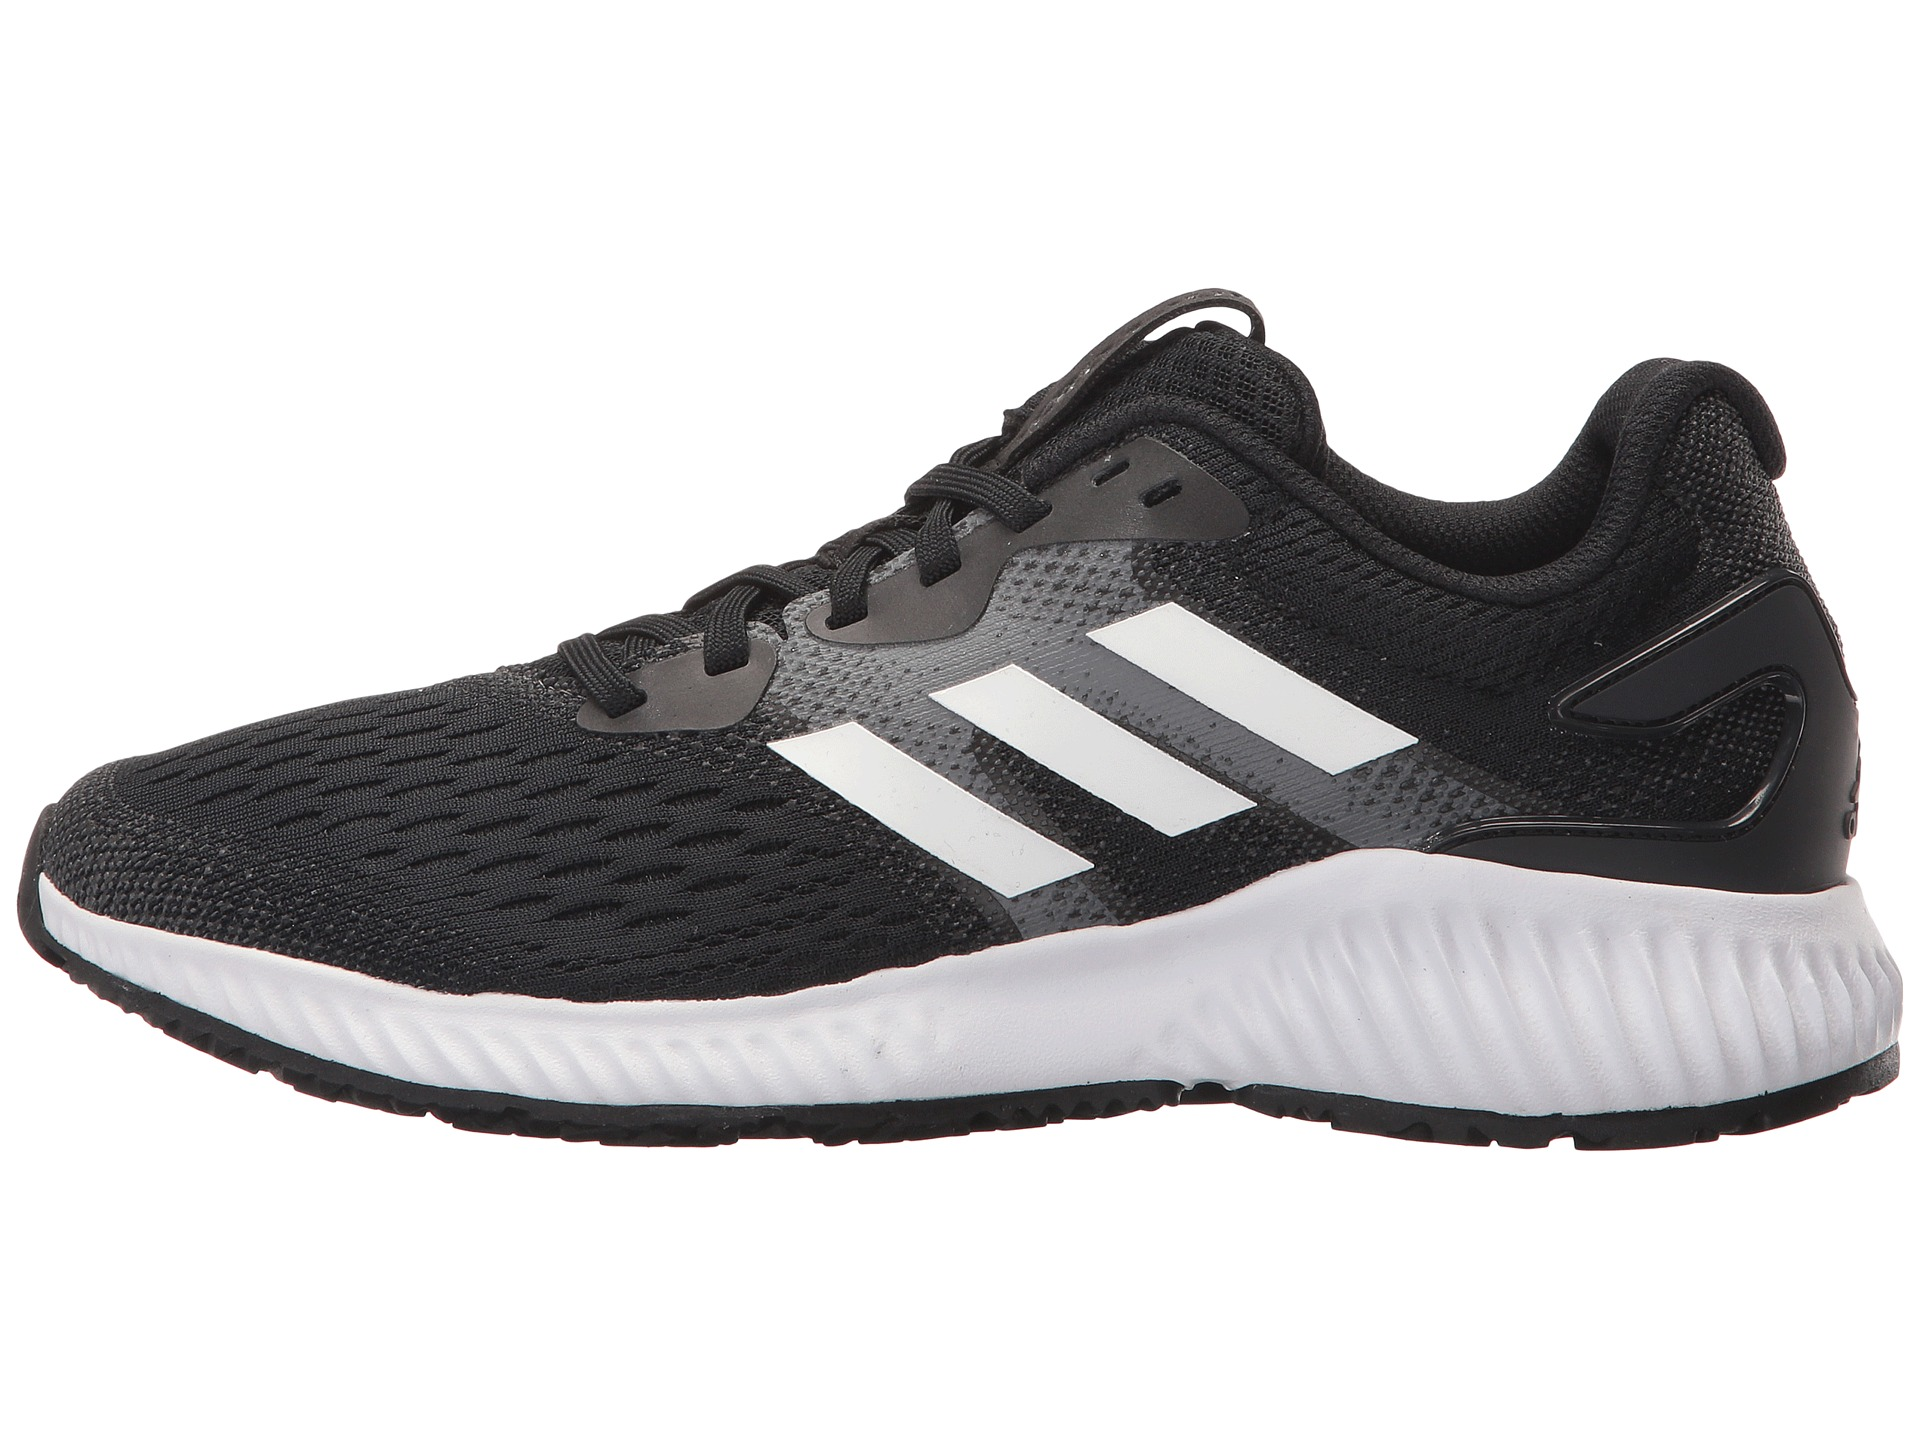 a7b8fd658d0a9 nmd adidas sale. Our expert sources in the world of footwear for babies